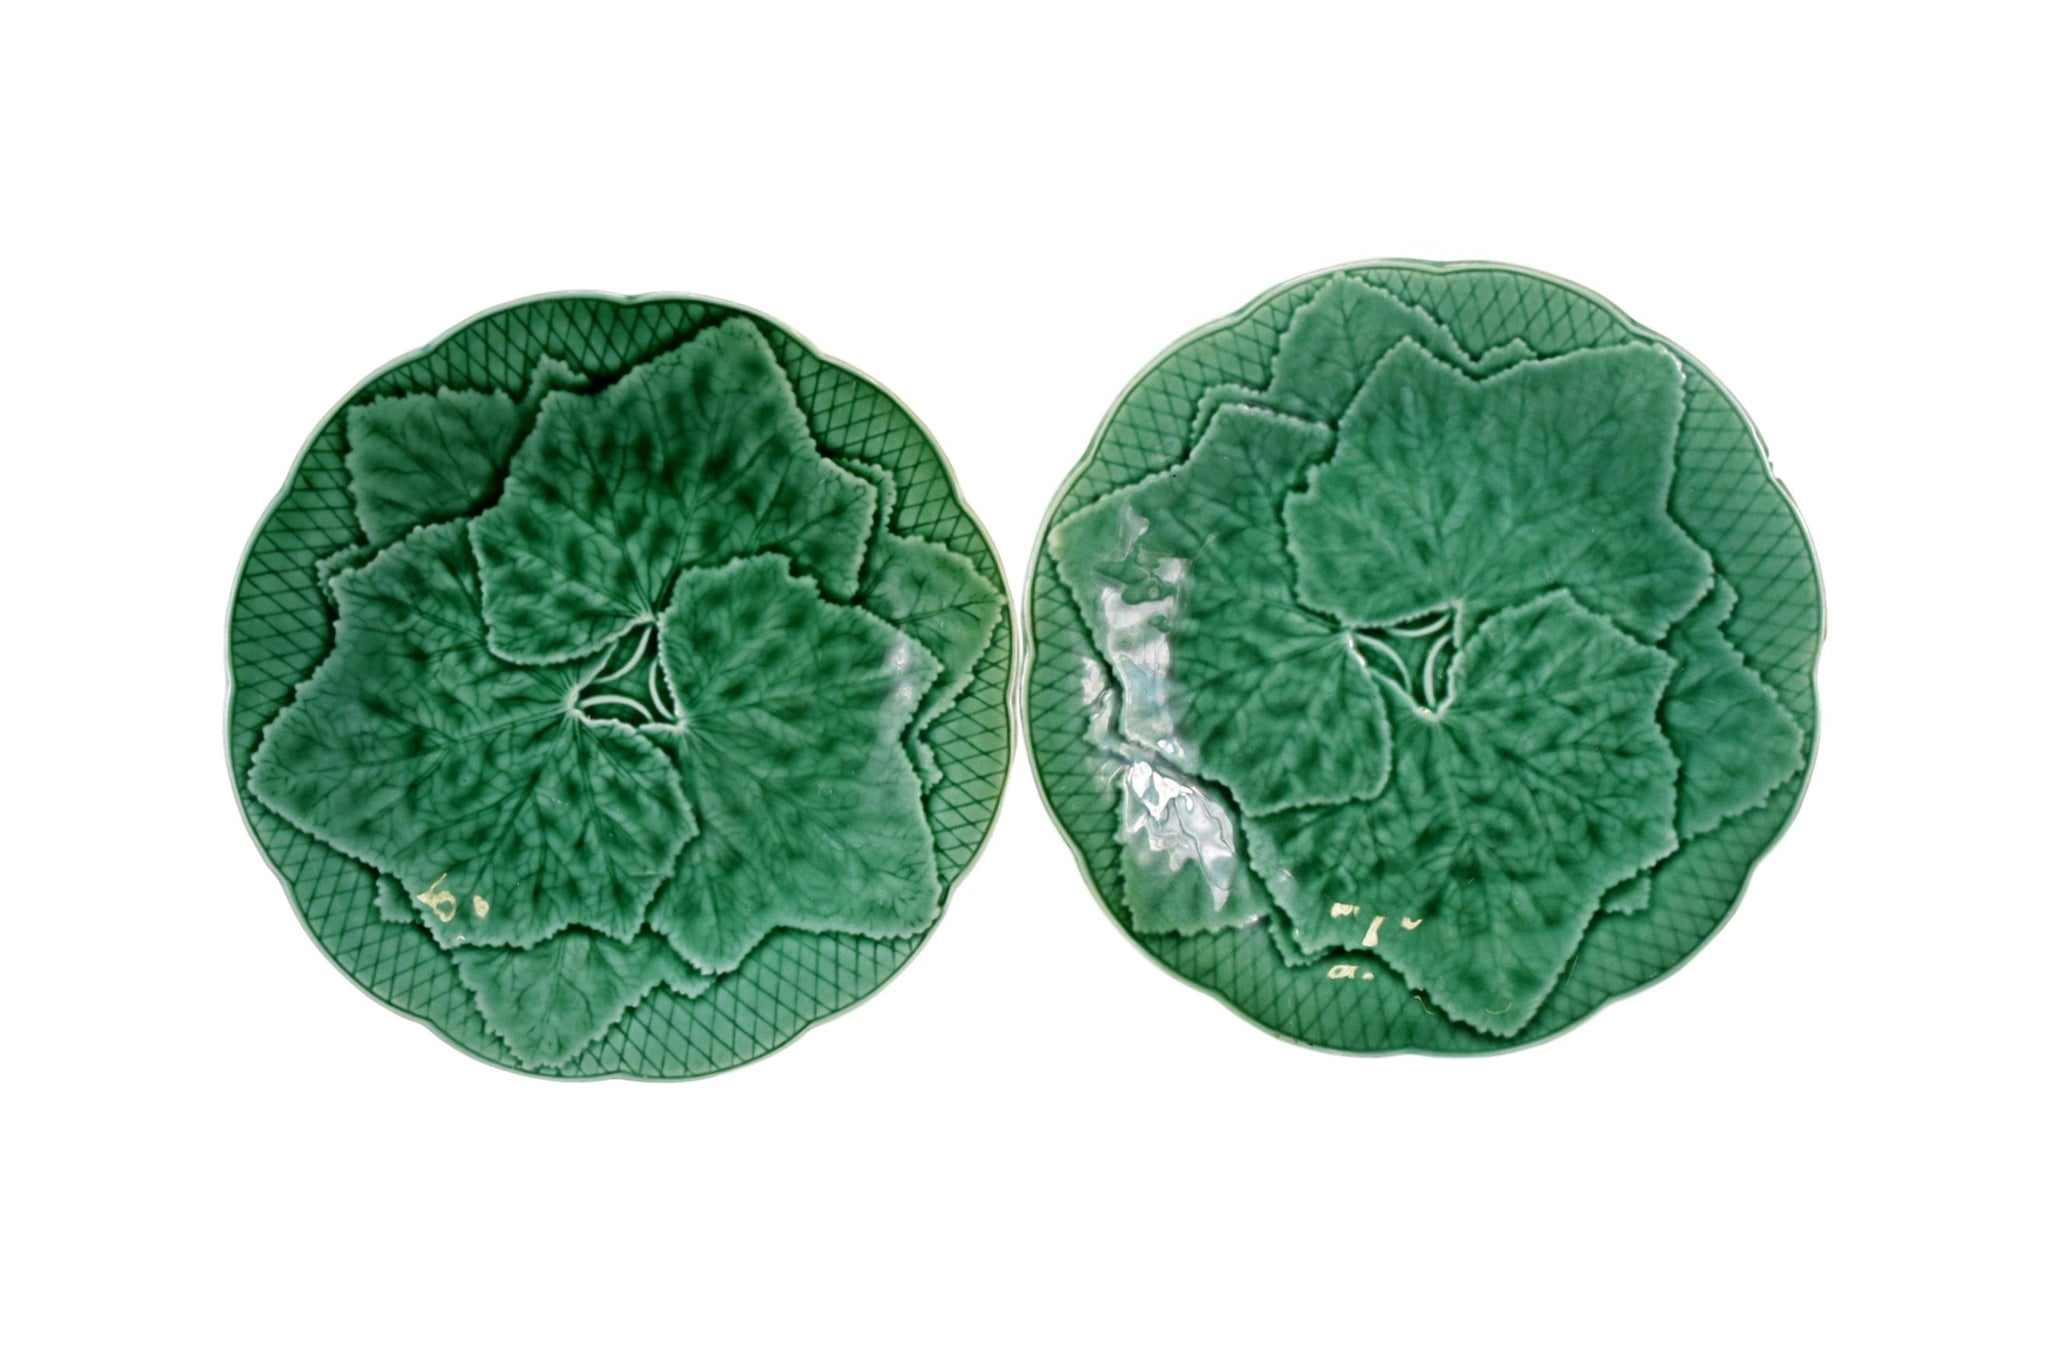 Set of Two 2 Green Majolica Leaf Plates by Gien Primefleur Creation for Garden House Tableware